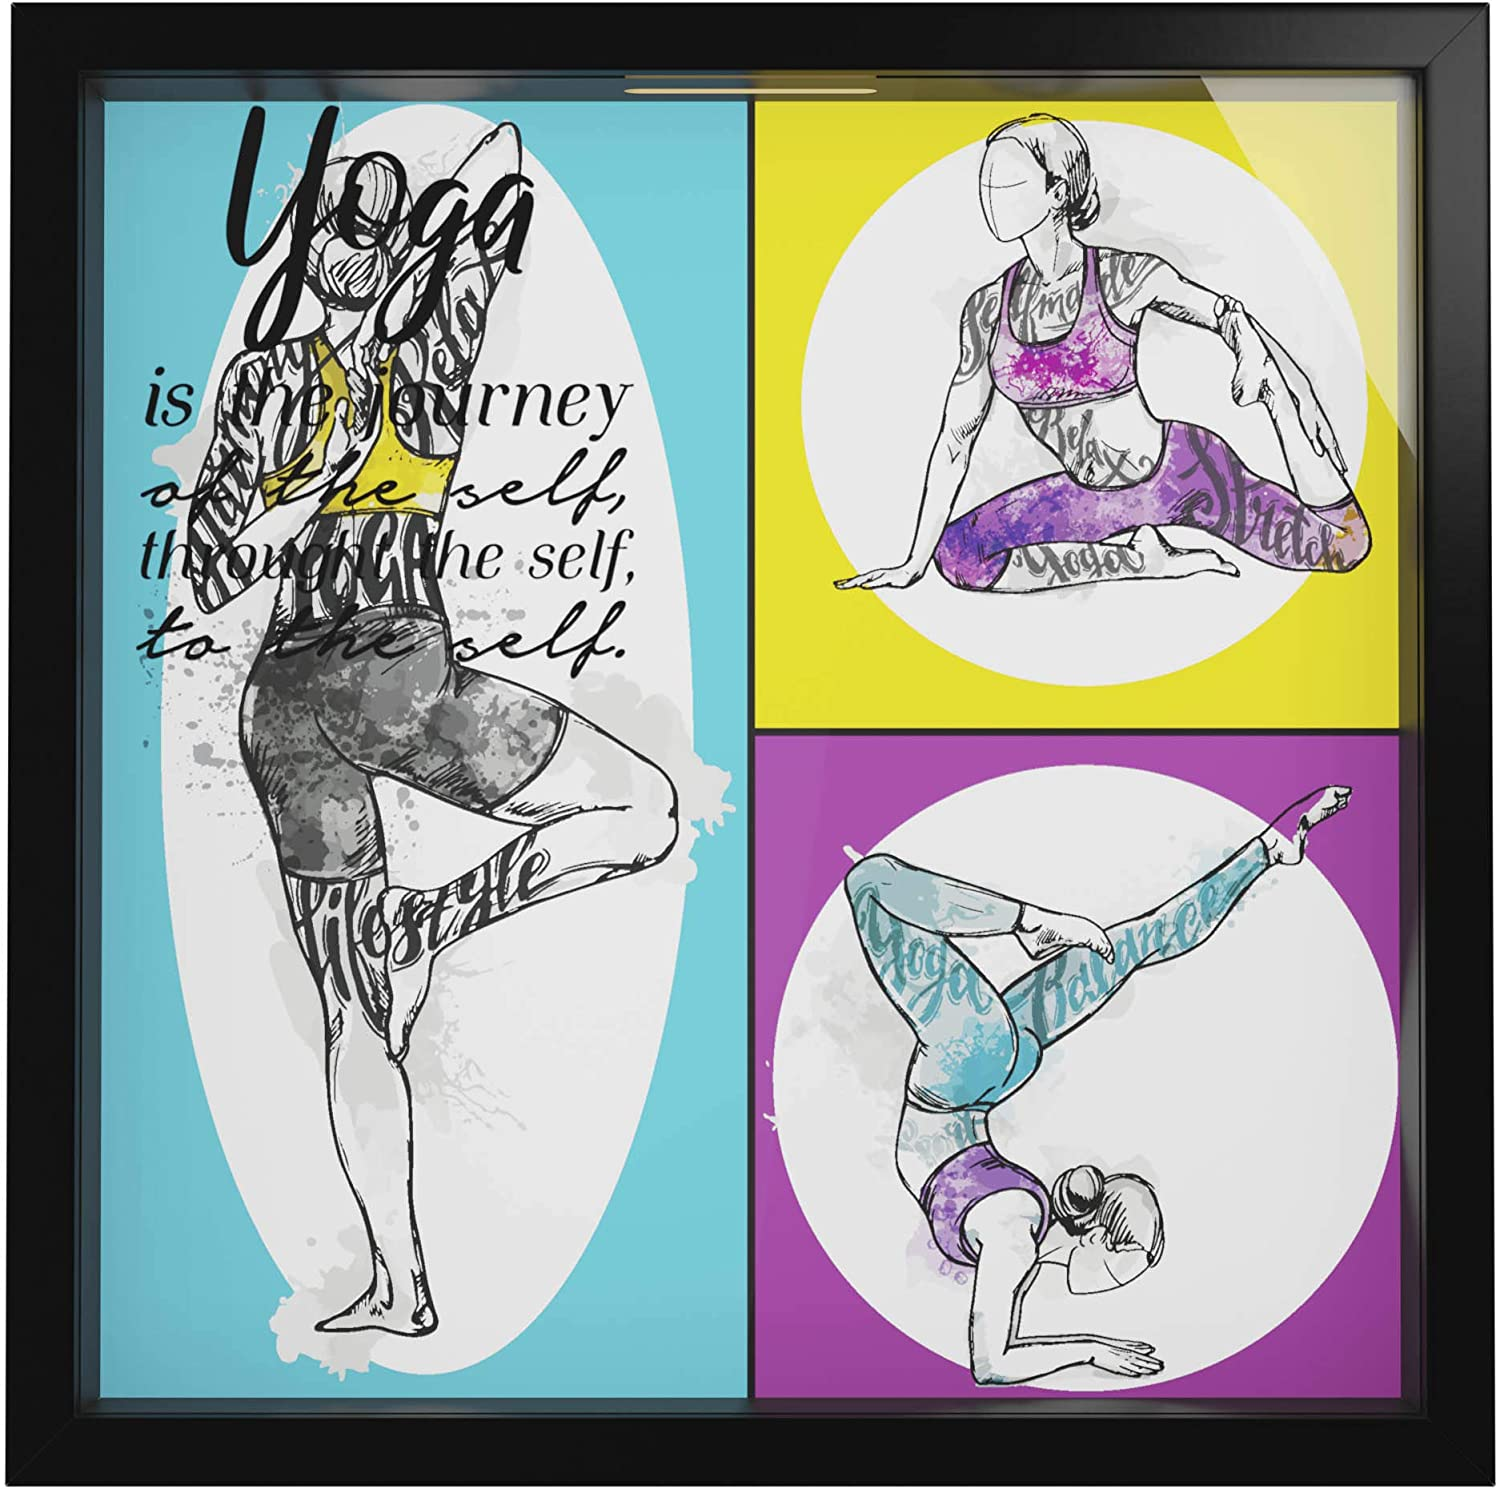 Yoga Decor |Meditation Wall Art Studio | Gifts For Yoga Enthusiasts | Yoga Instructor Gift Appreciation | Zen Decorations For Home | Namaste Pictures For Wall